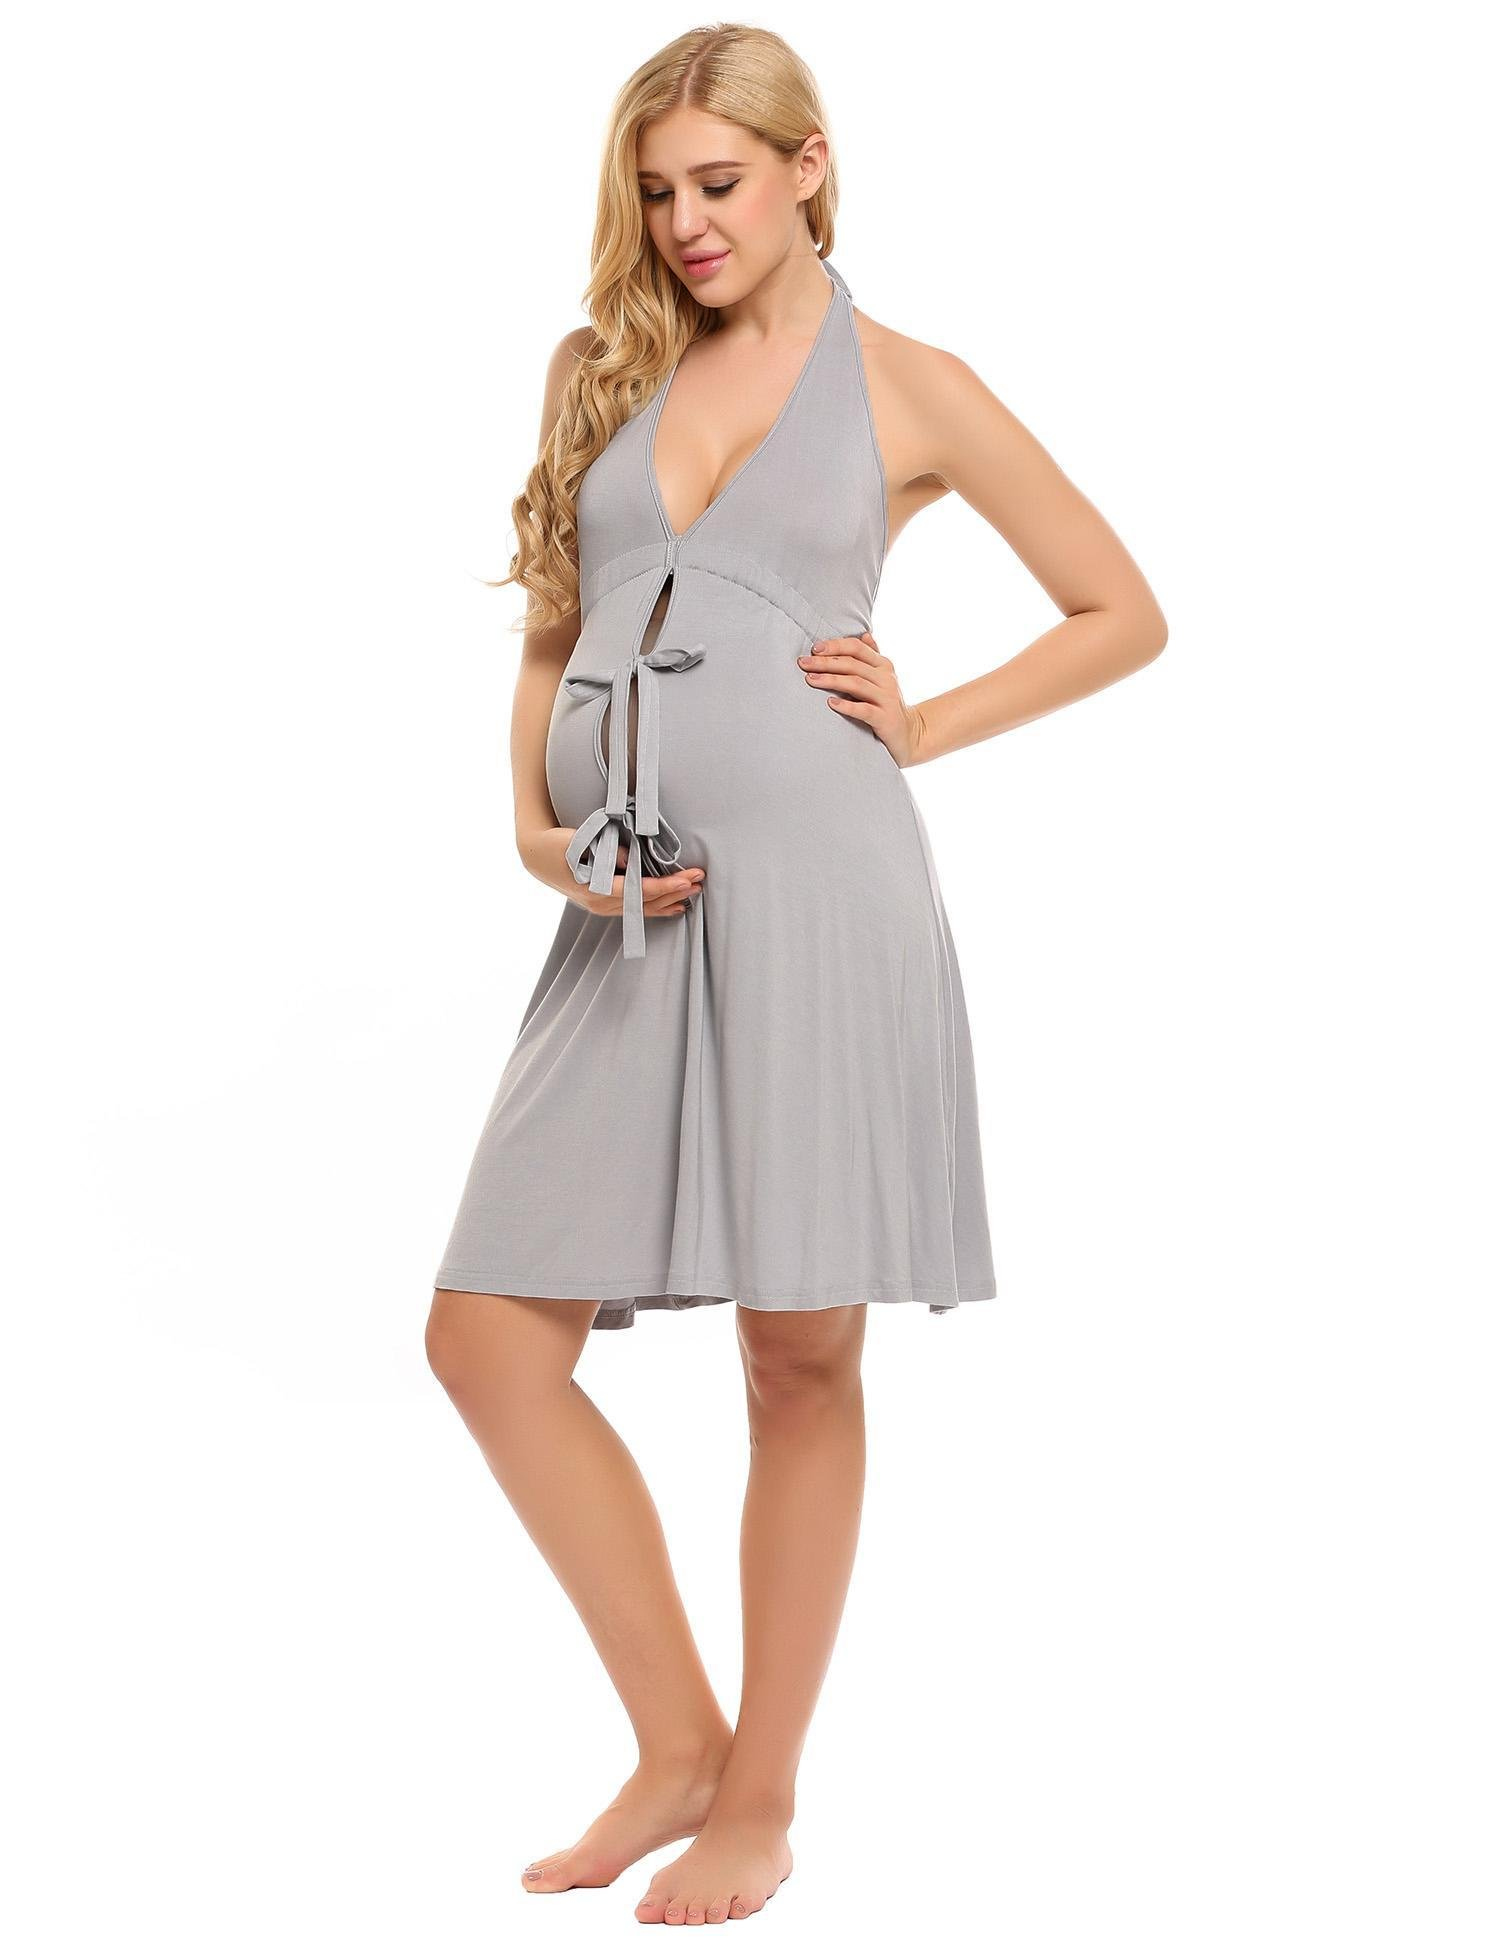 Baguet Womens V Neck Backless Maternity Dress Labor Gown For Free Size Pregnancy/Breastfeeding Front Open Pleated Dress